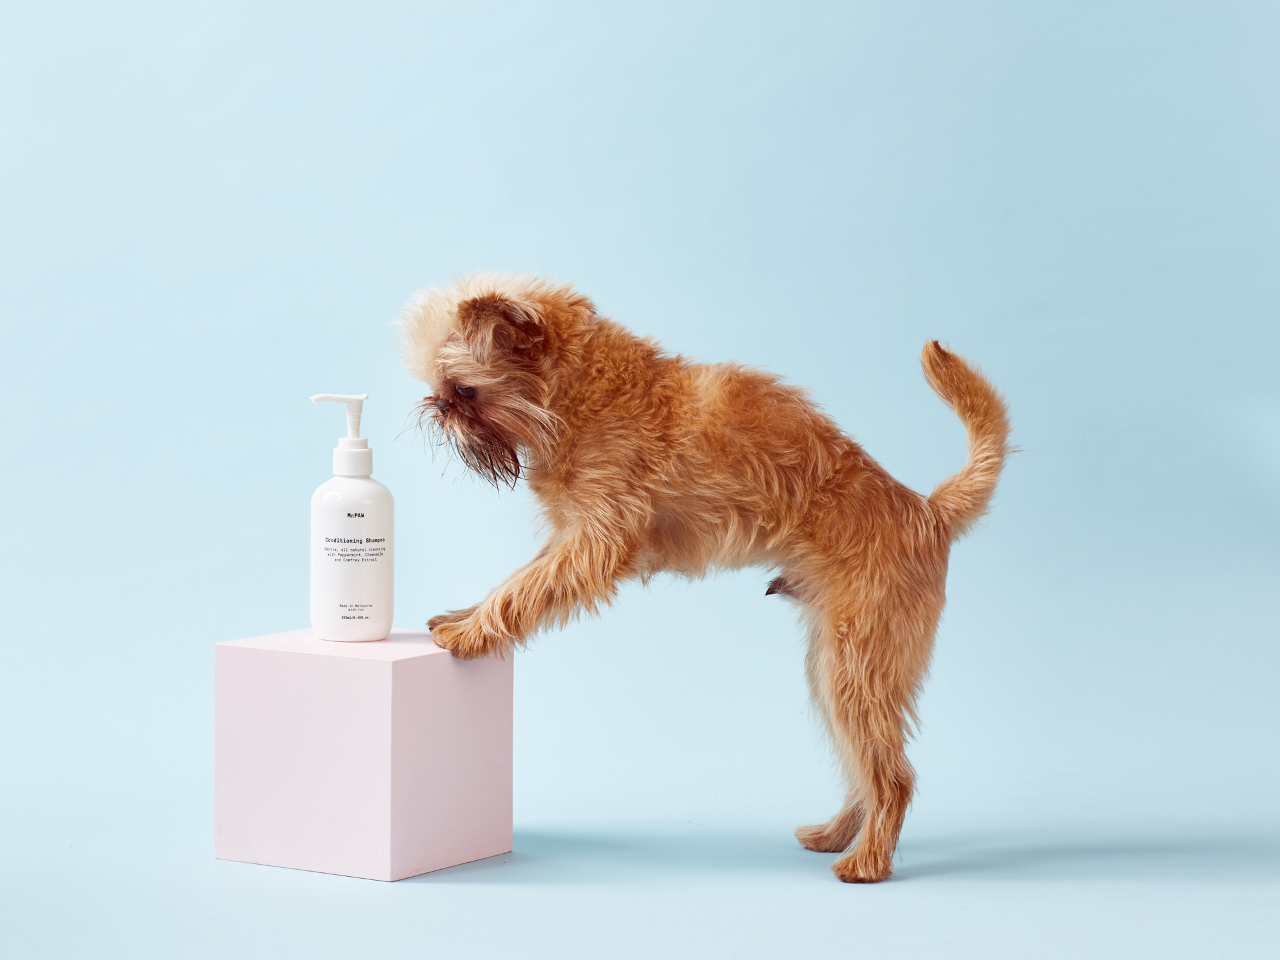 All-Natural, Vegan Dog Shampoo from Mr. Paw